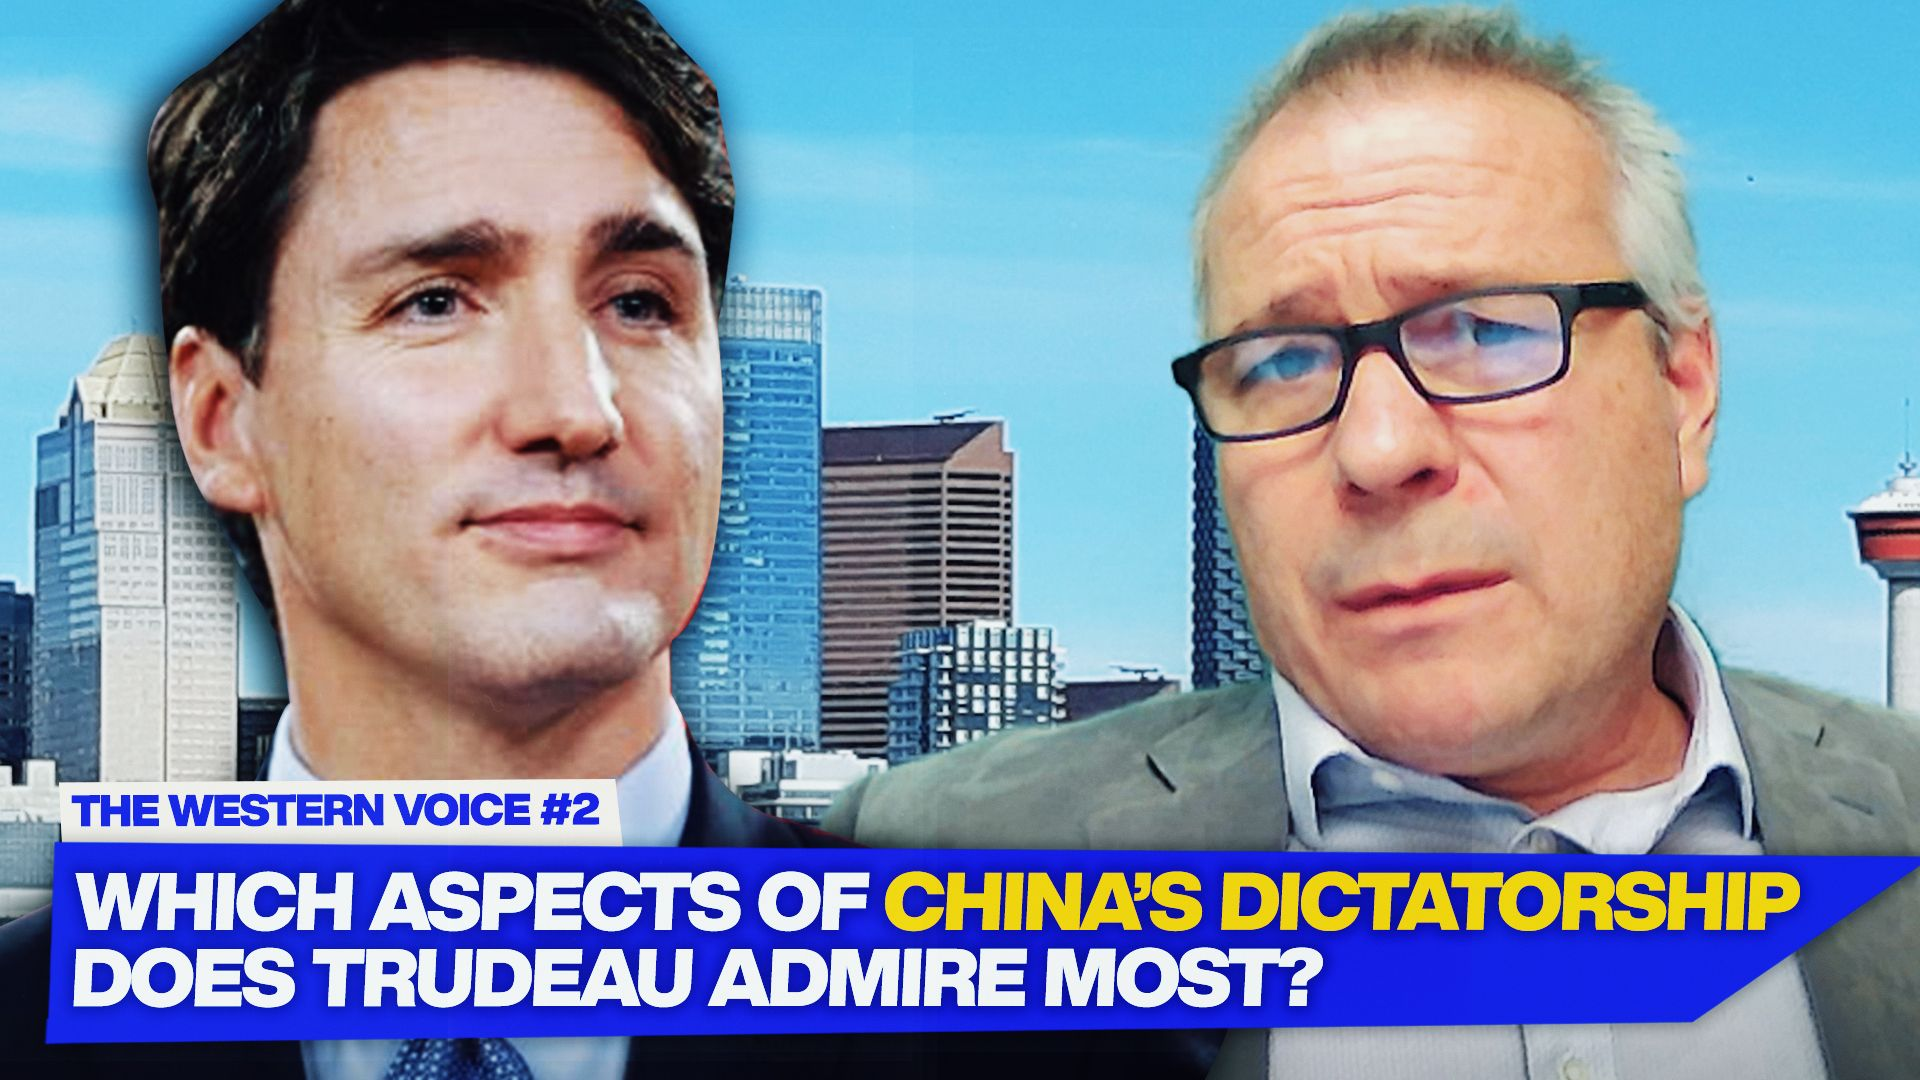 Which aspects of China's basic dictatorship does Trudeau admire most? - The Western Voice